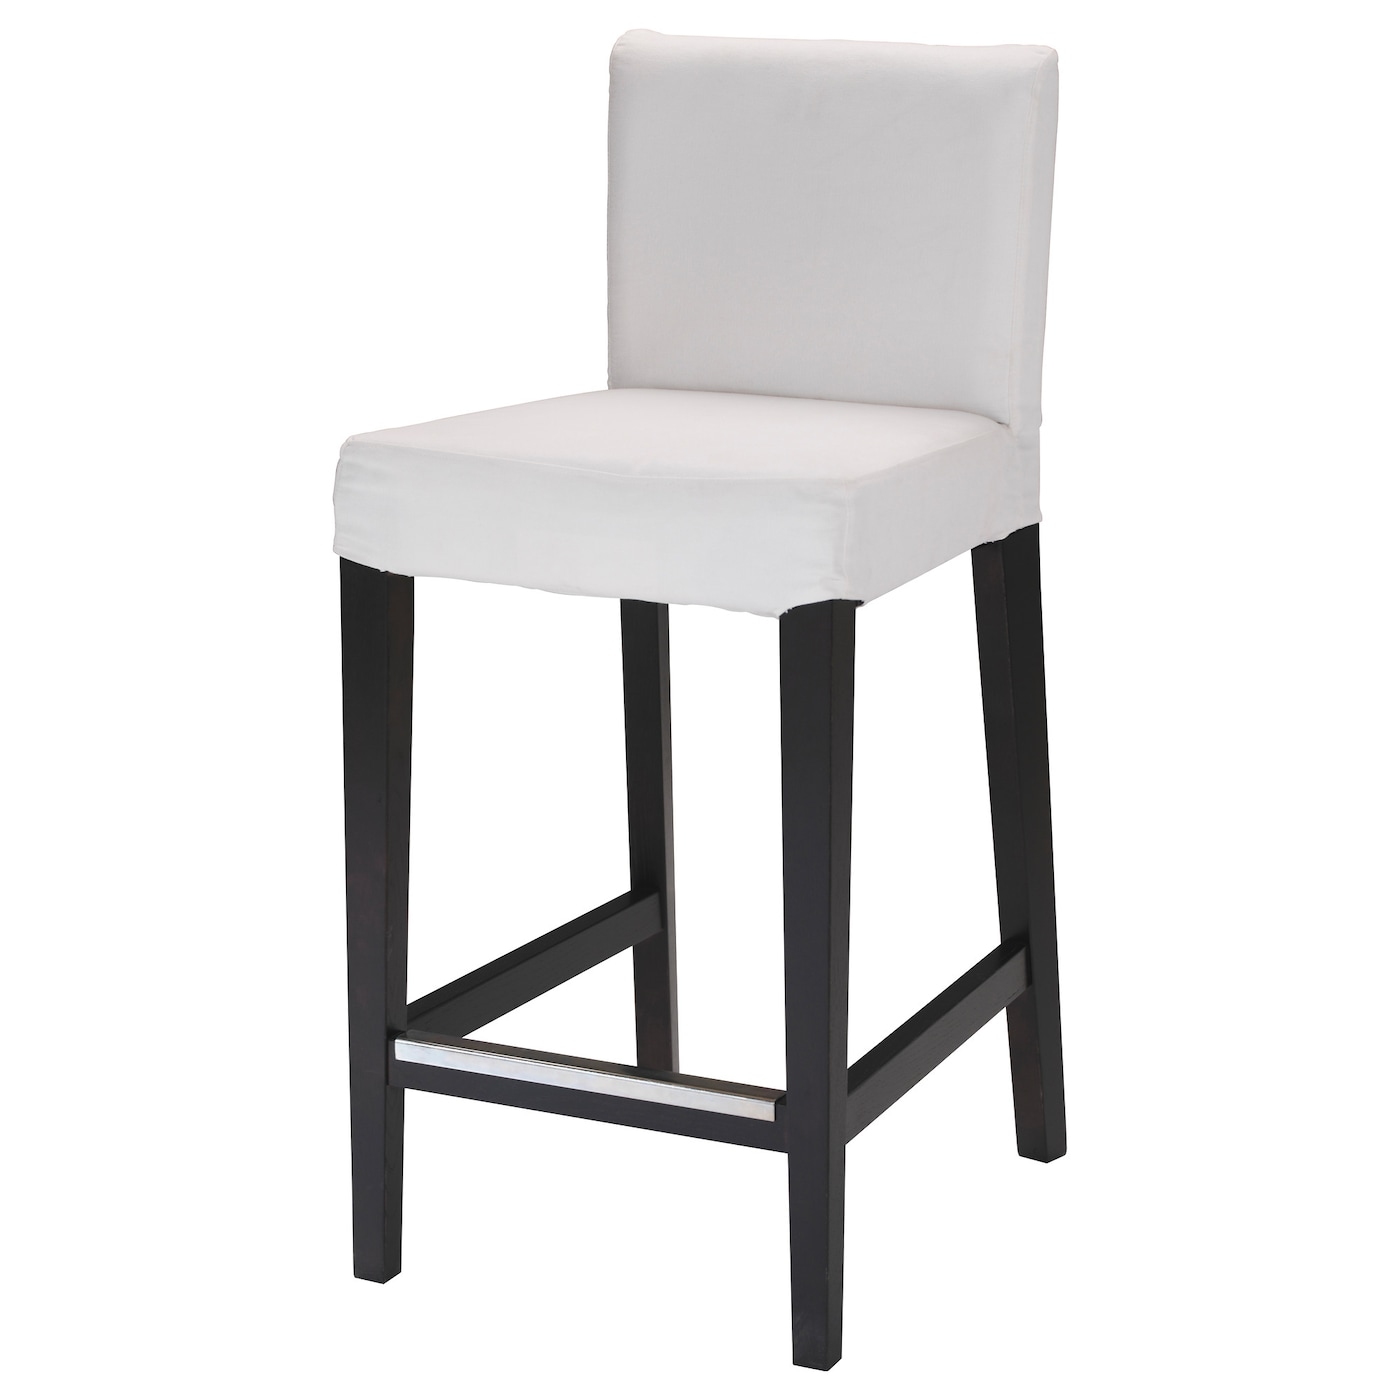 Bar stools folding bar stools ikea ireland for Ikea folding stool